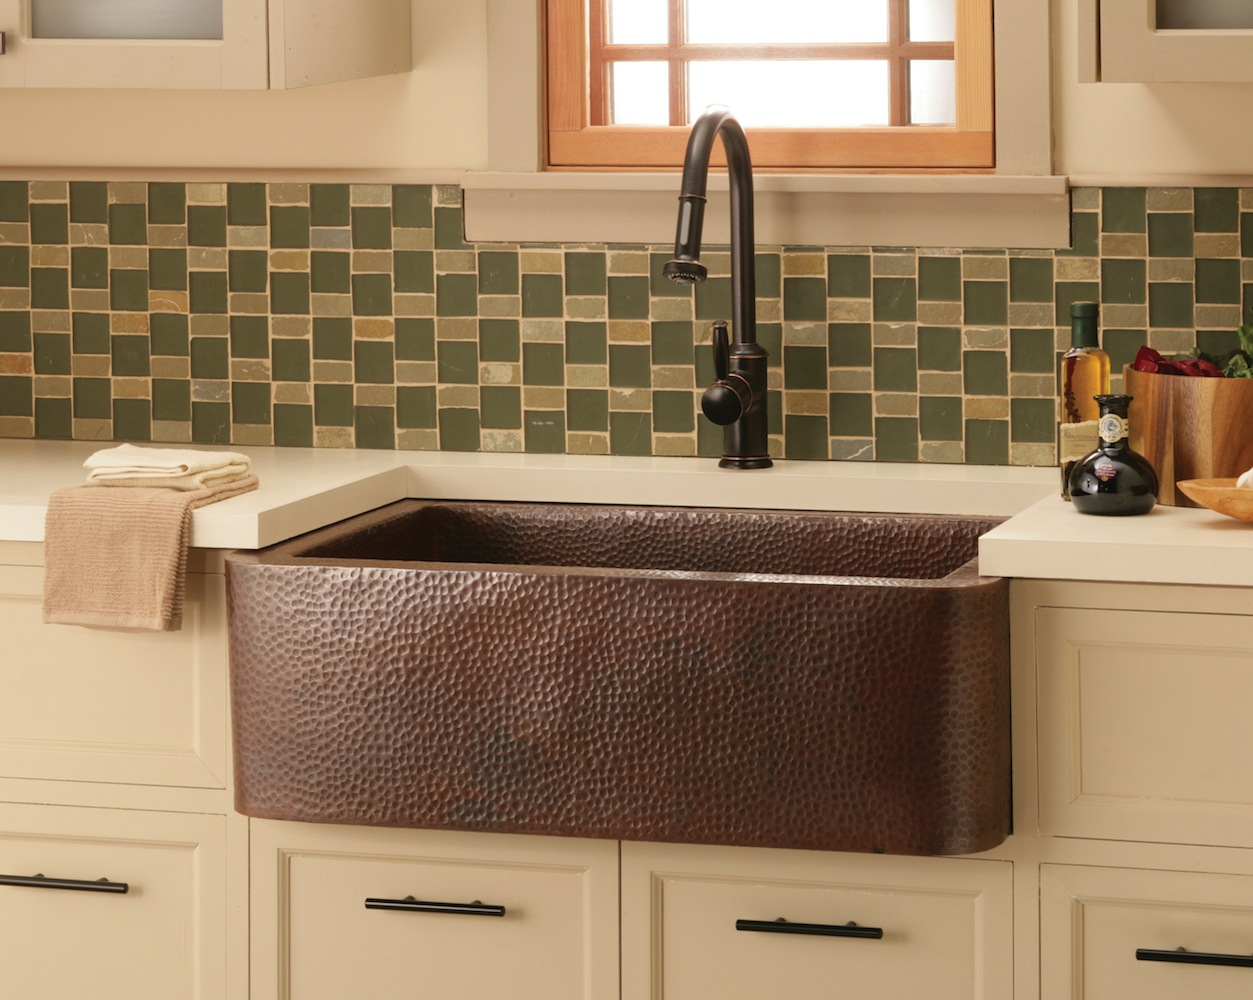 Native Trails Kitchen Sinks - Copper - Farmhouse 33 CPK273 - Antique Finish